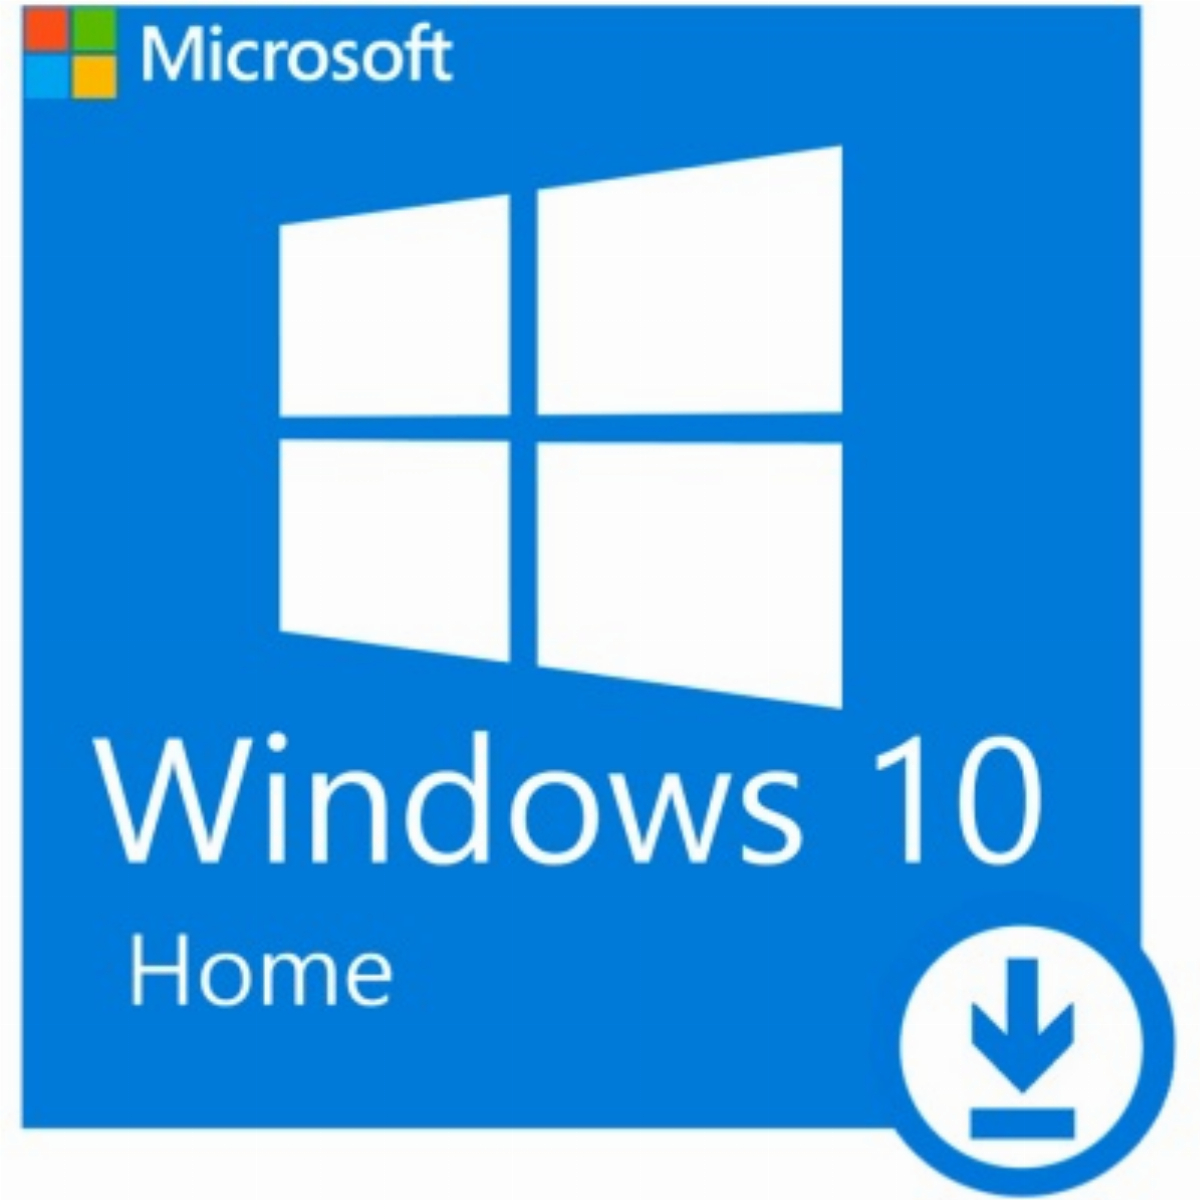 Windows 10 Home FPP P2 32-bit/64-bit Eng USB